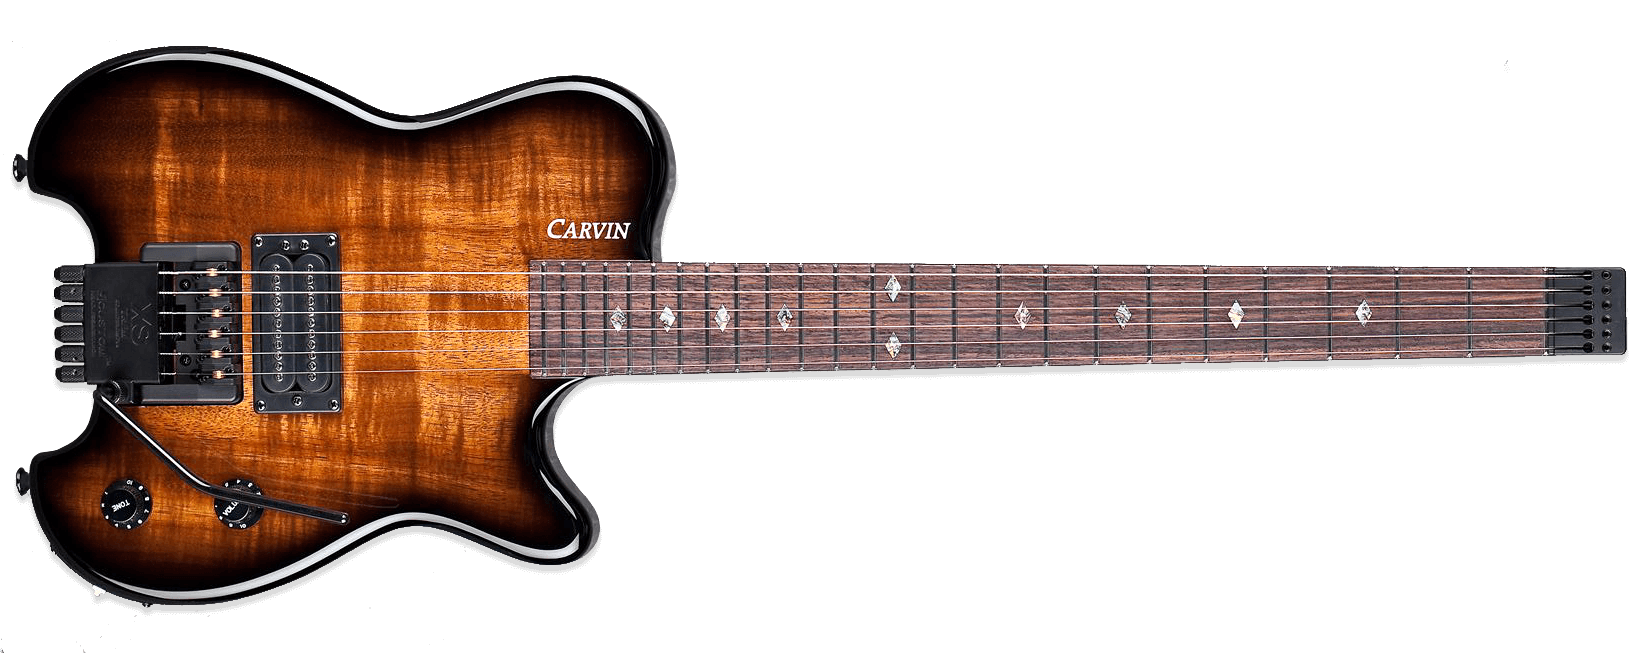 Carvin Allan Holdsworth HH1 Tobacco Burst